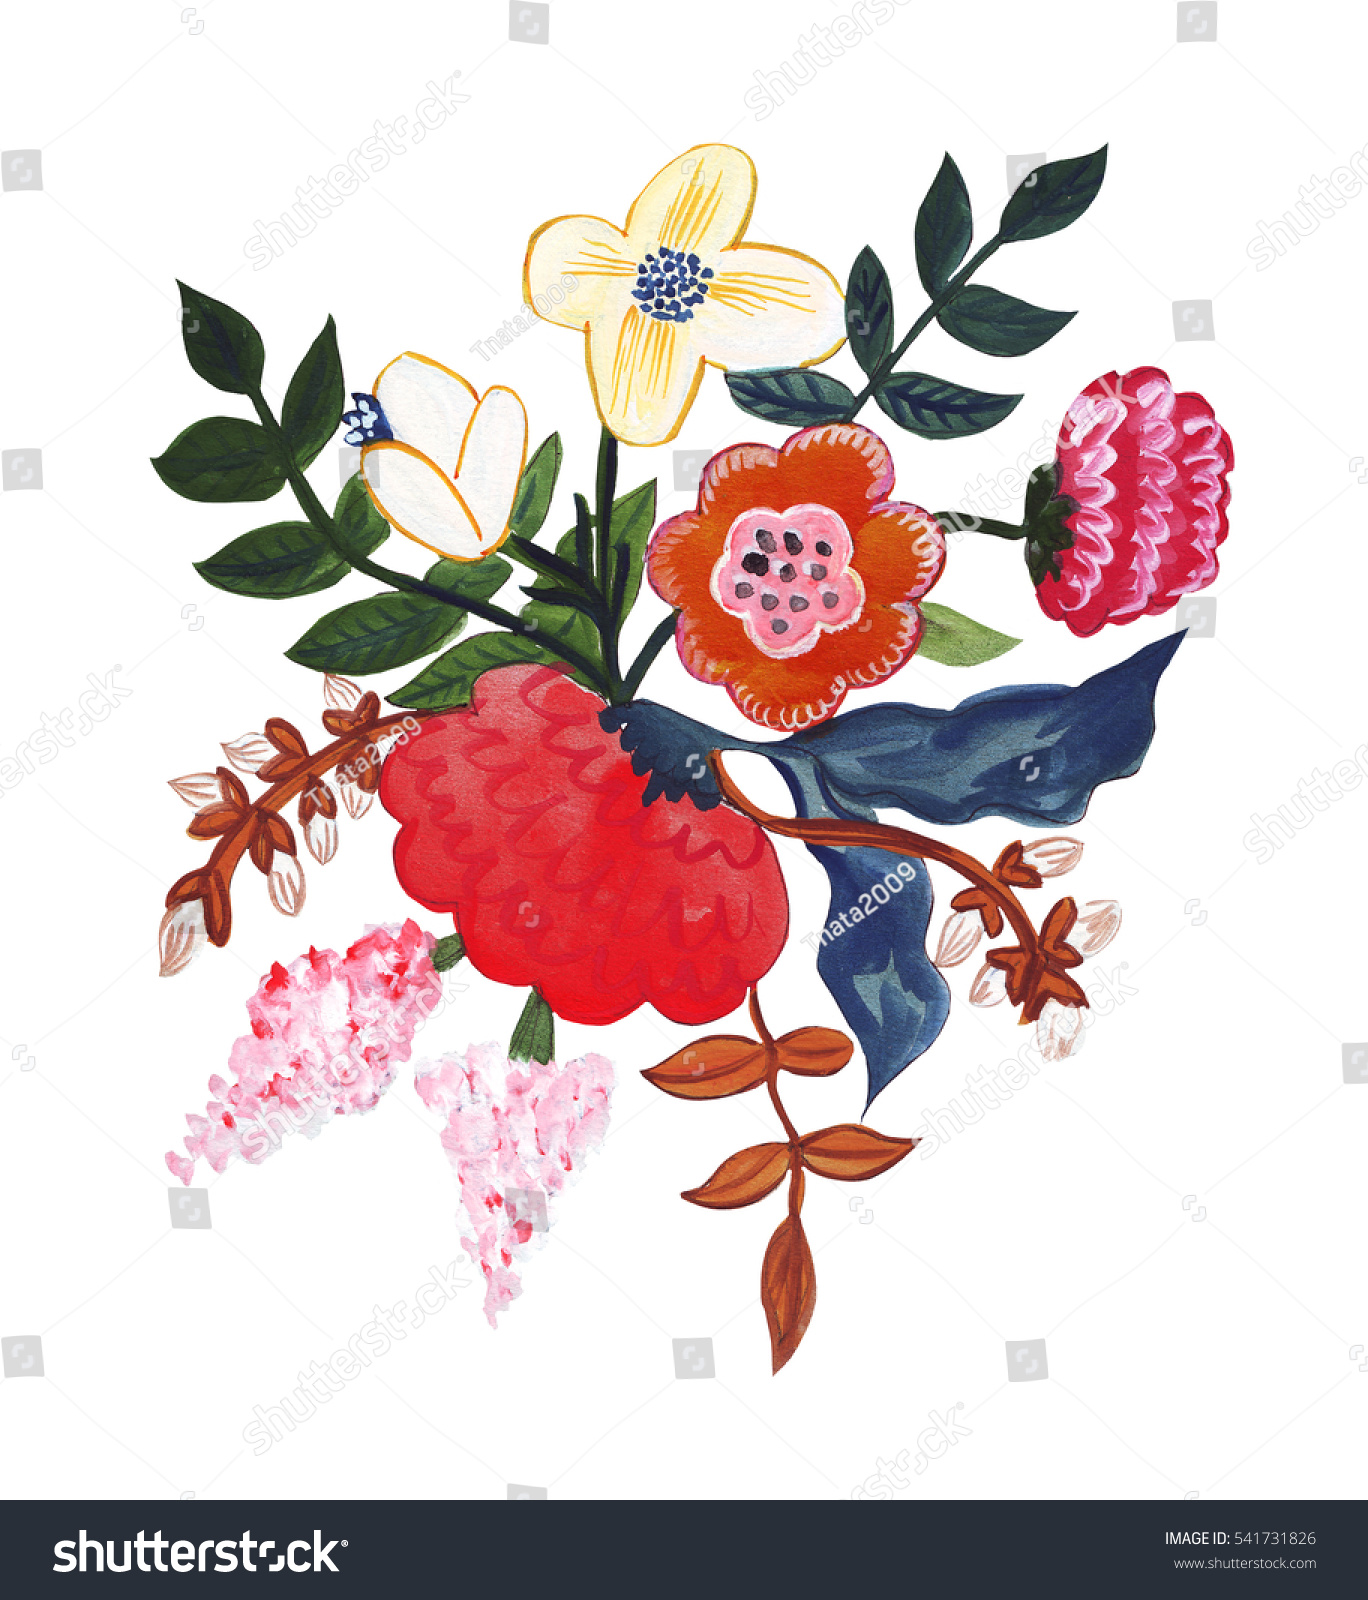 Illustration pencil drawing bouquet flowers bright stock illustration of pencil drawing bouquet flowers in bright colors for various types of isolated izmirmasajfo